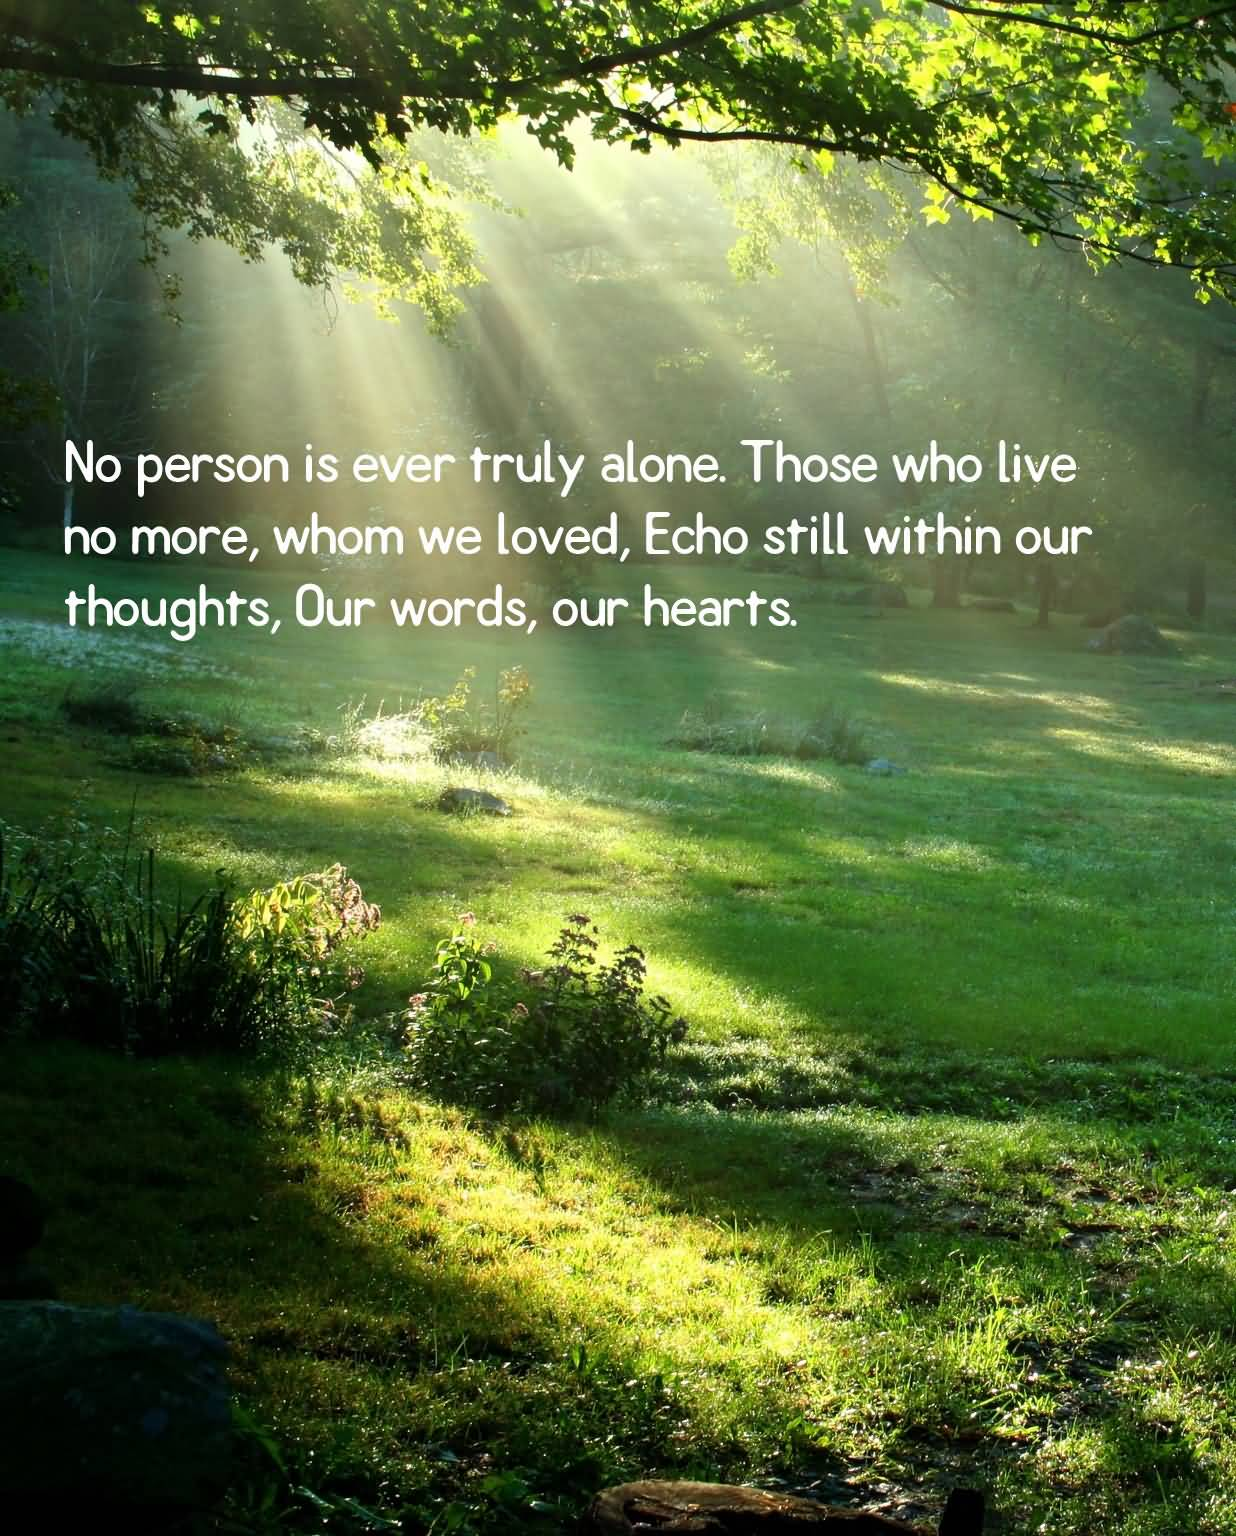 40 images and pictures of sympathy messages no person is ever truly alone those who live no more whom we lived kristyandbryce Choice Image